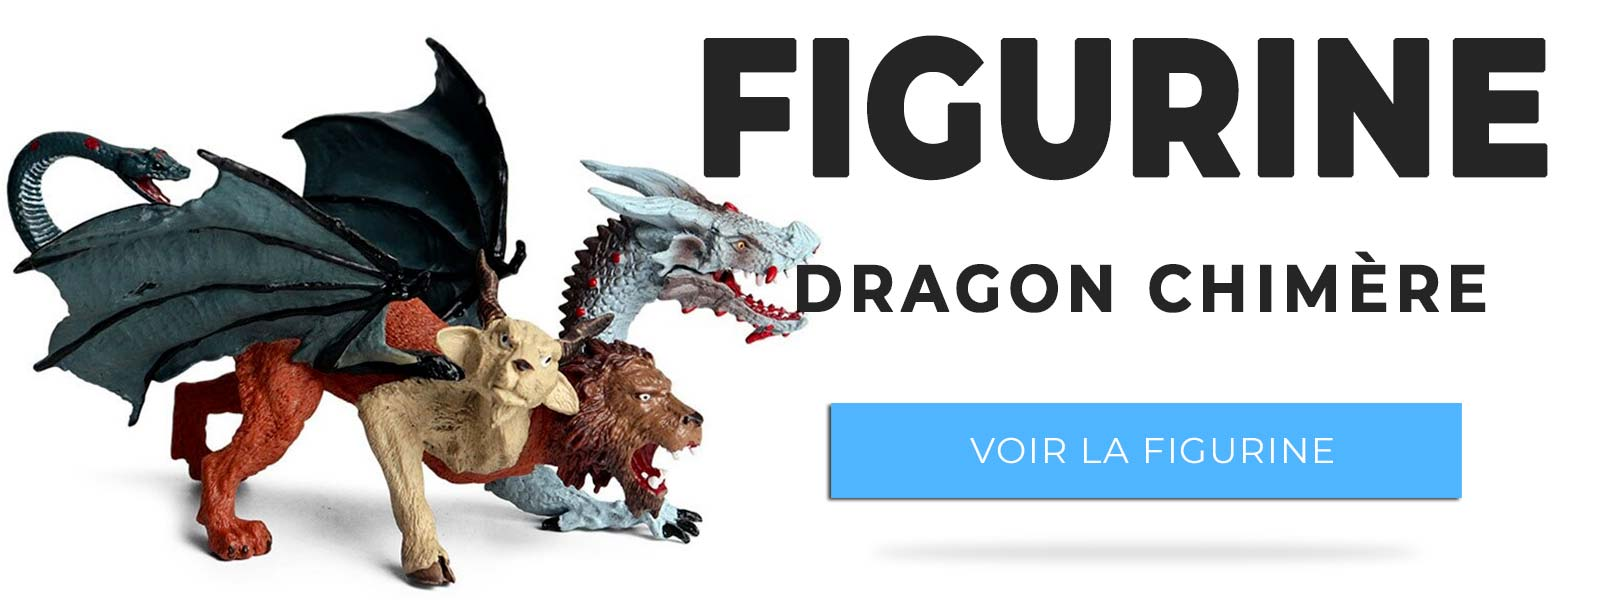 Figurine dragon chimère